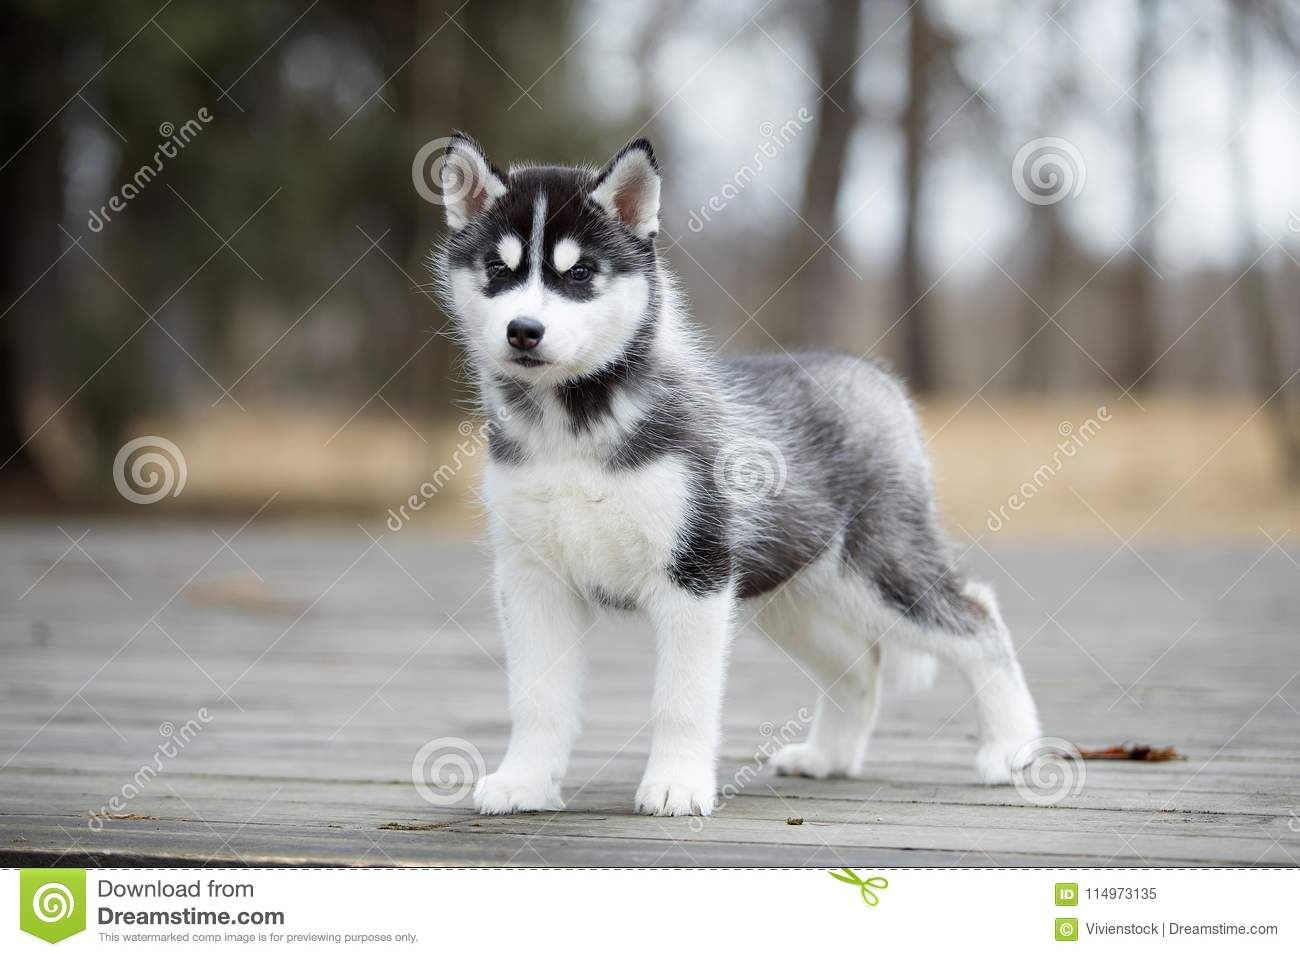 Cute Puppy Siberian Husky Black And White Stock Image Image Of Doggy Friend 114973135